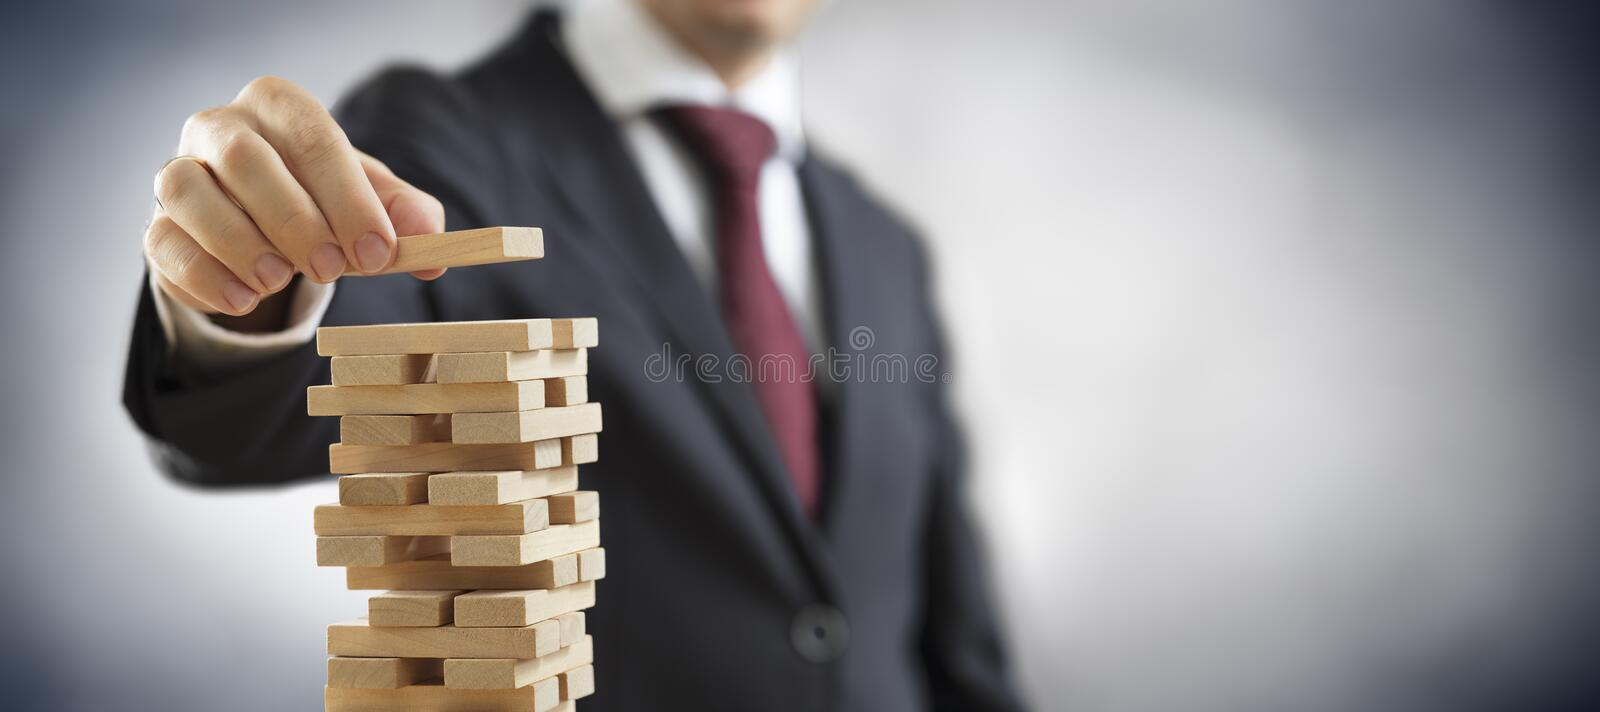 Business Planning And Strategy royalty free stock images